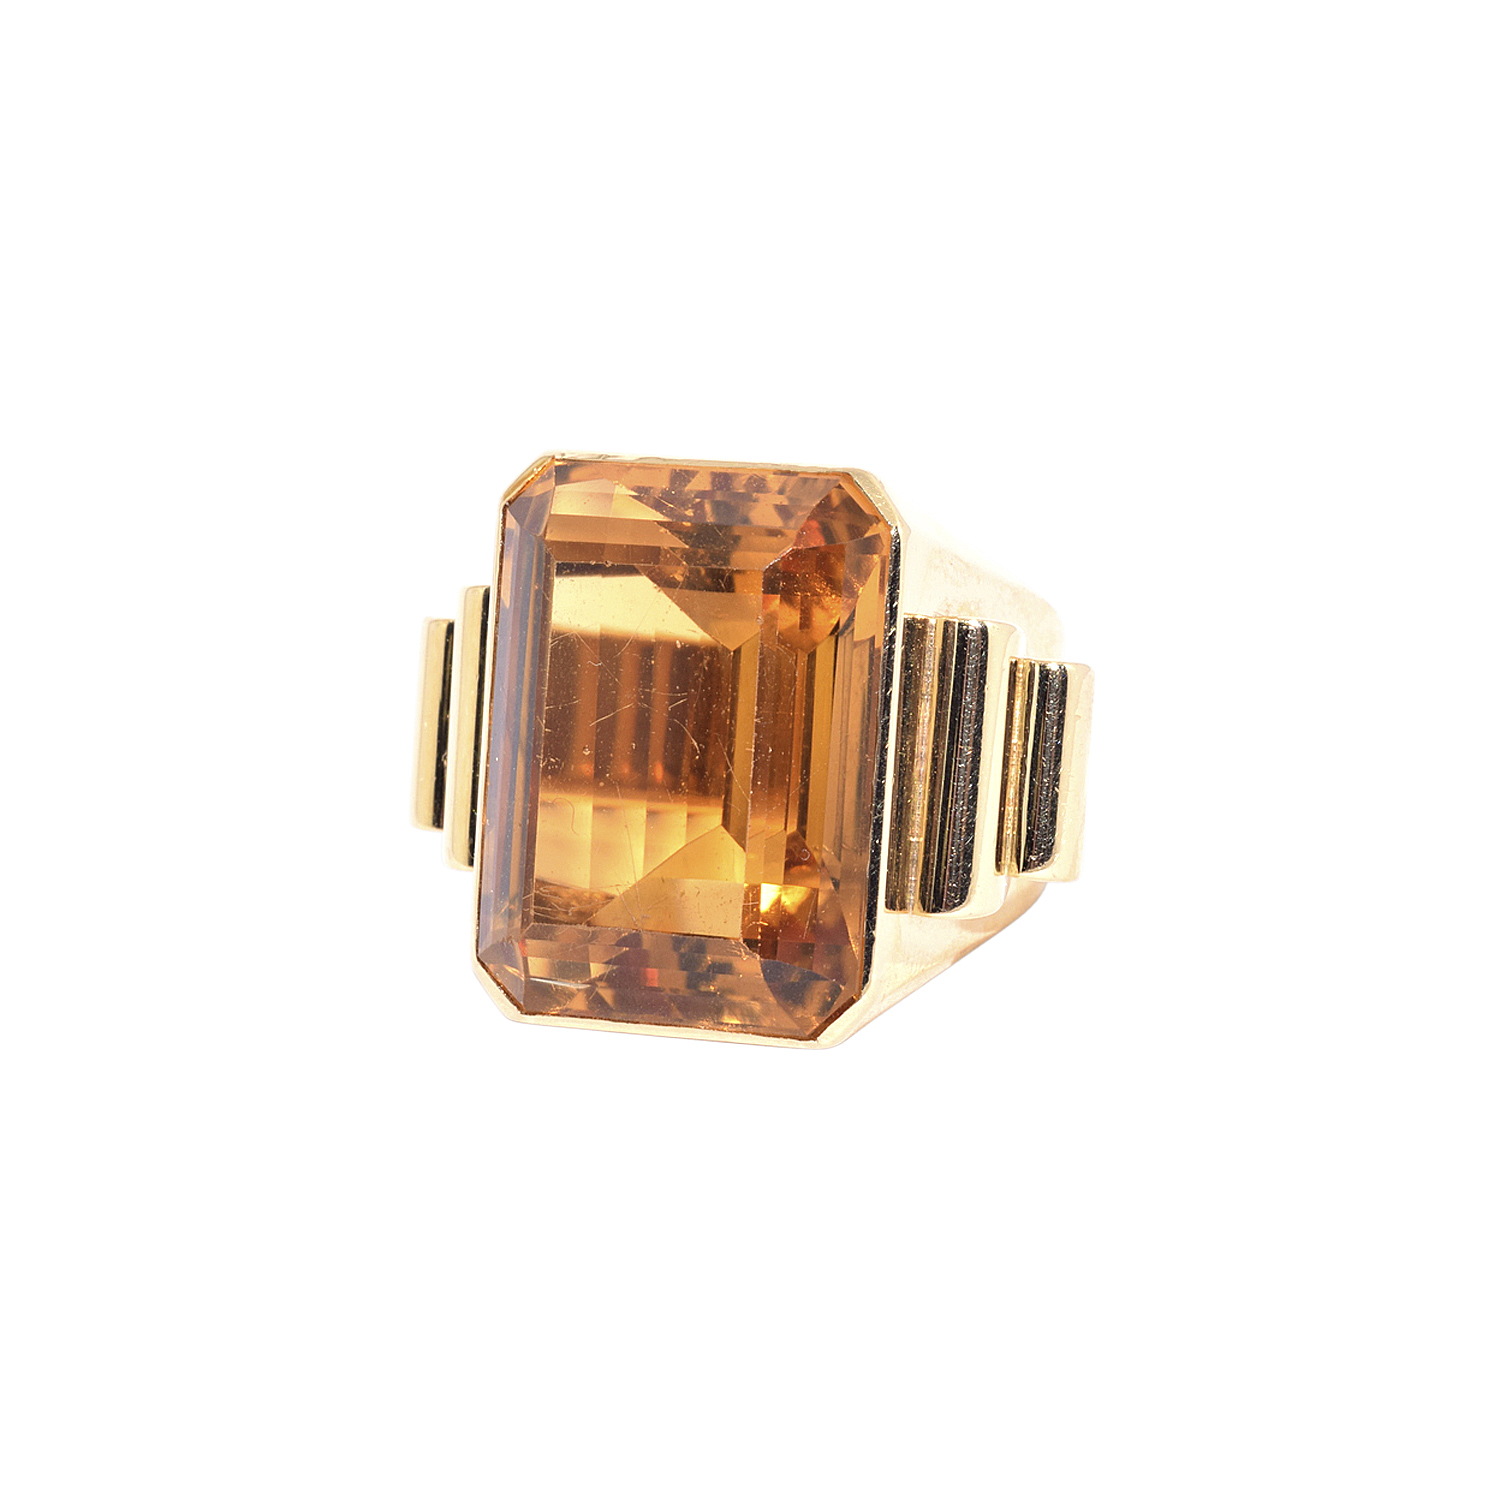 Retro 18K Yellow Gold Citrine Cocktail Ring Style R-40240-FL-0-0